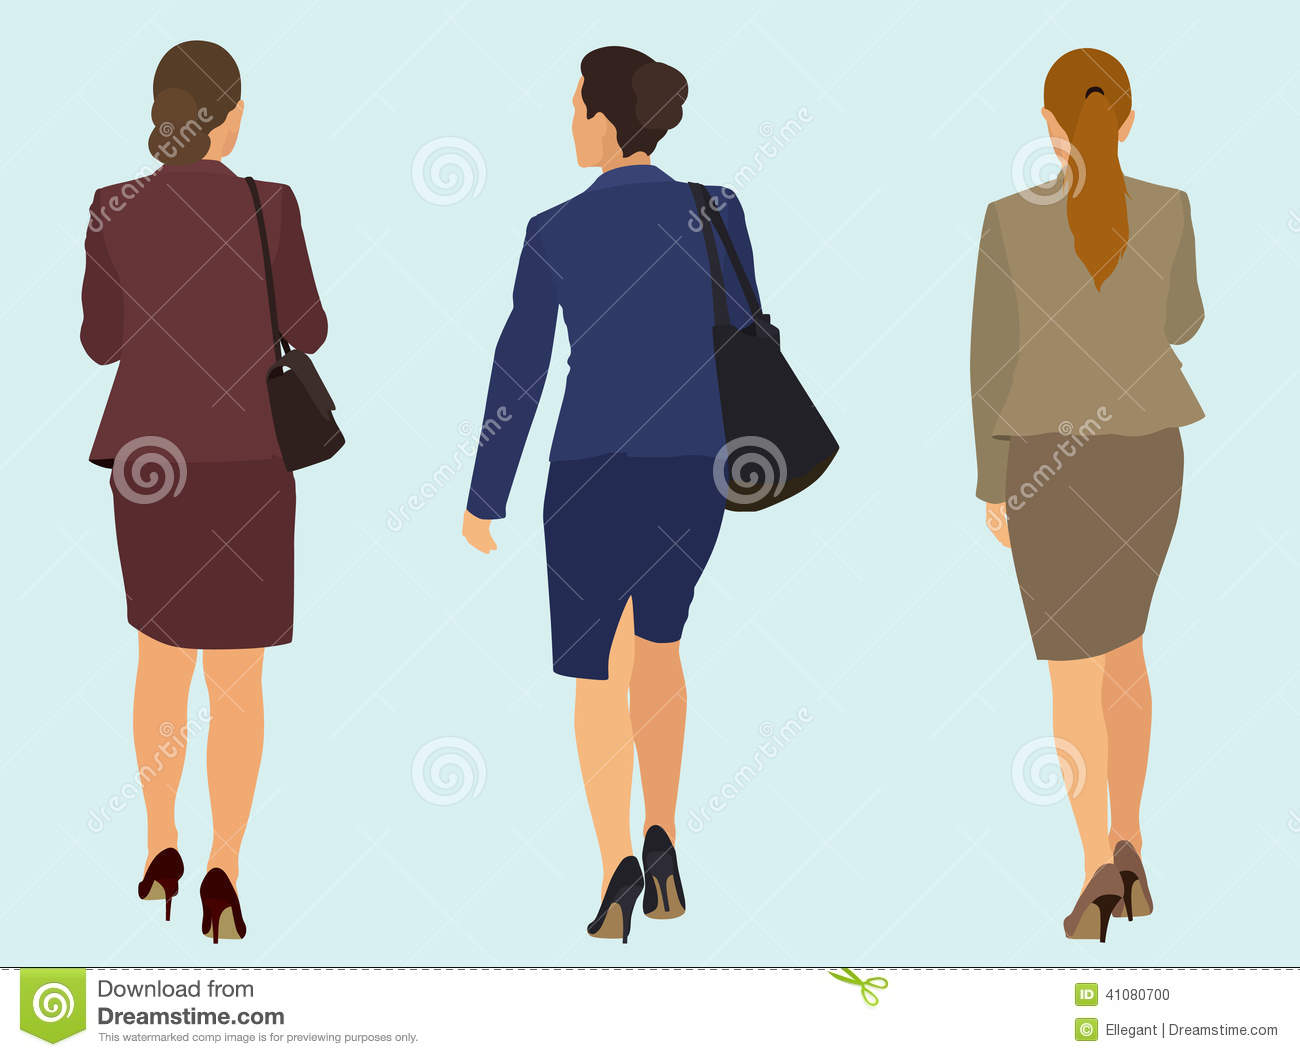 Business Women Walking Away Stock Vector - Image: 41080700